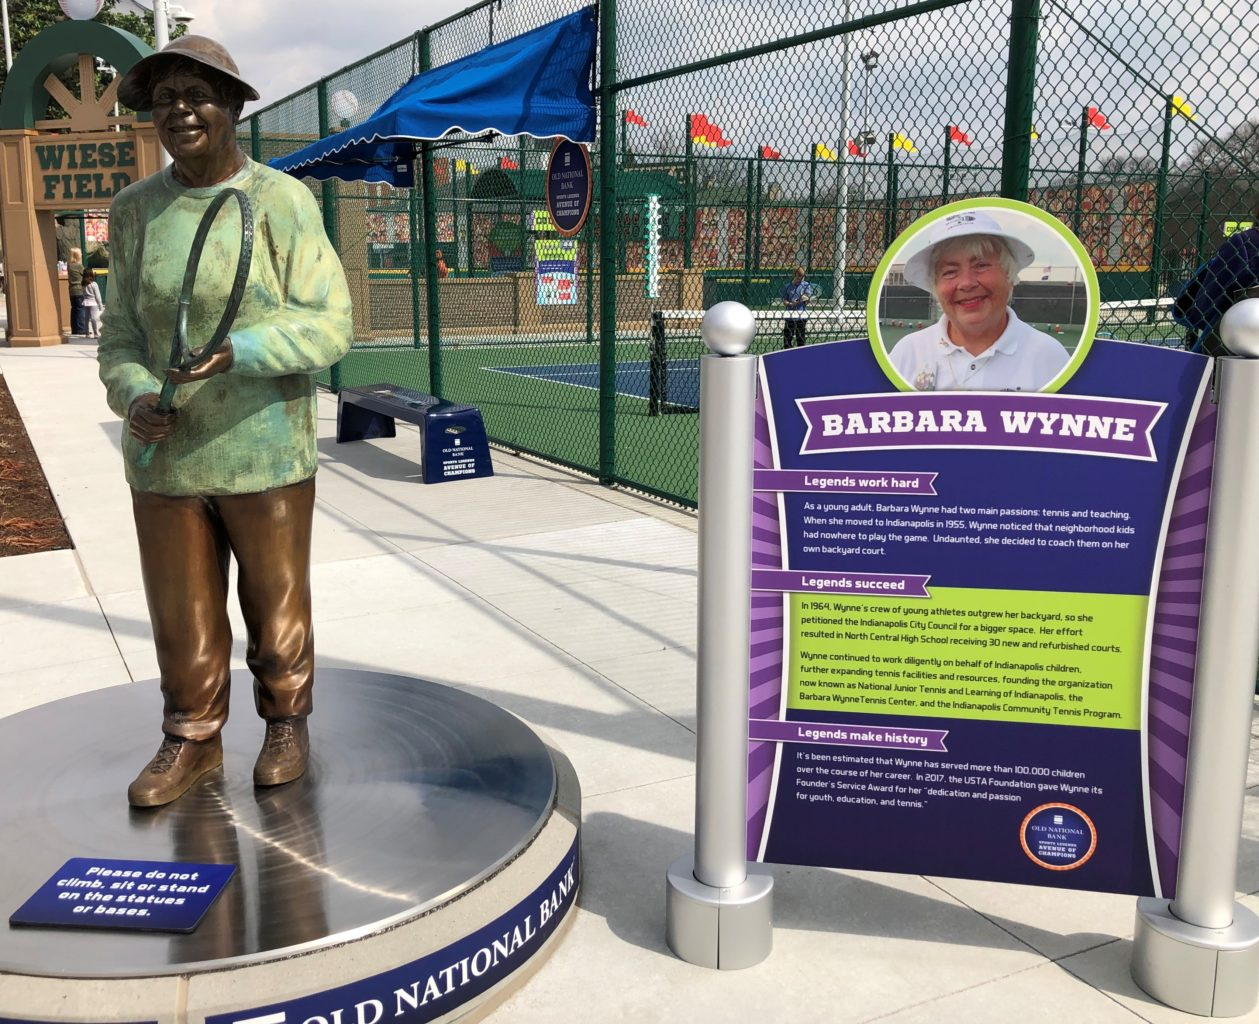 Children's Museum of Indianapolis - outdoor sports legends